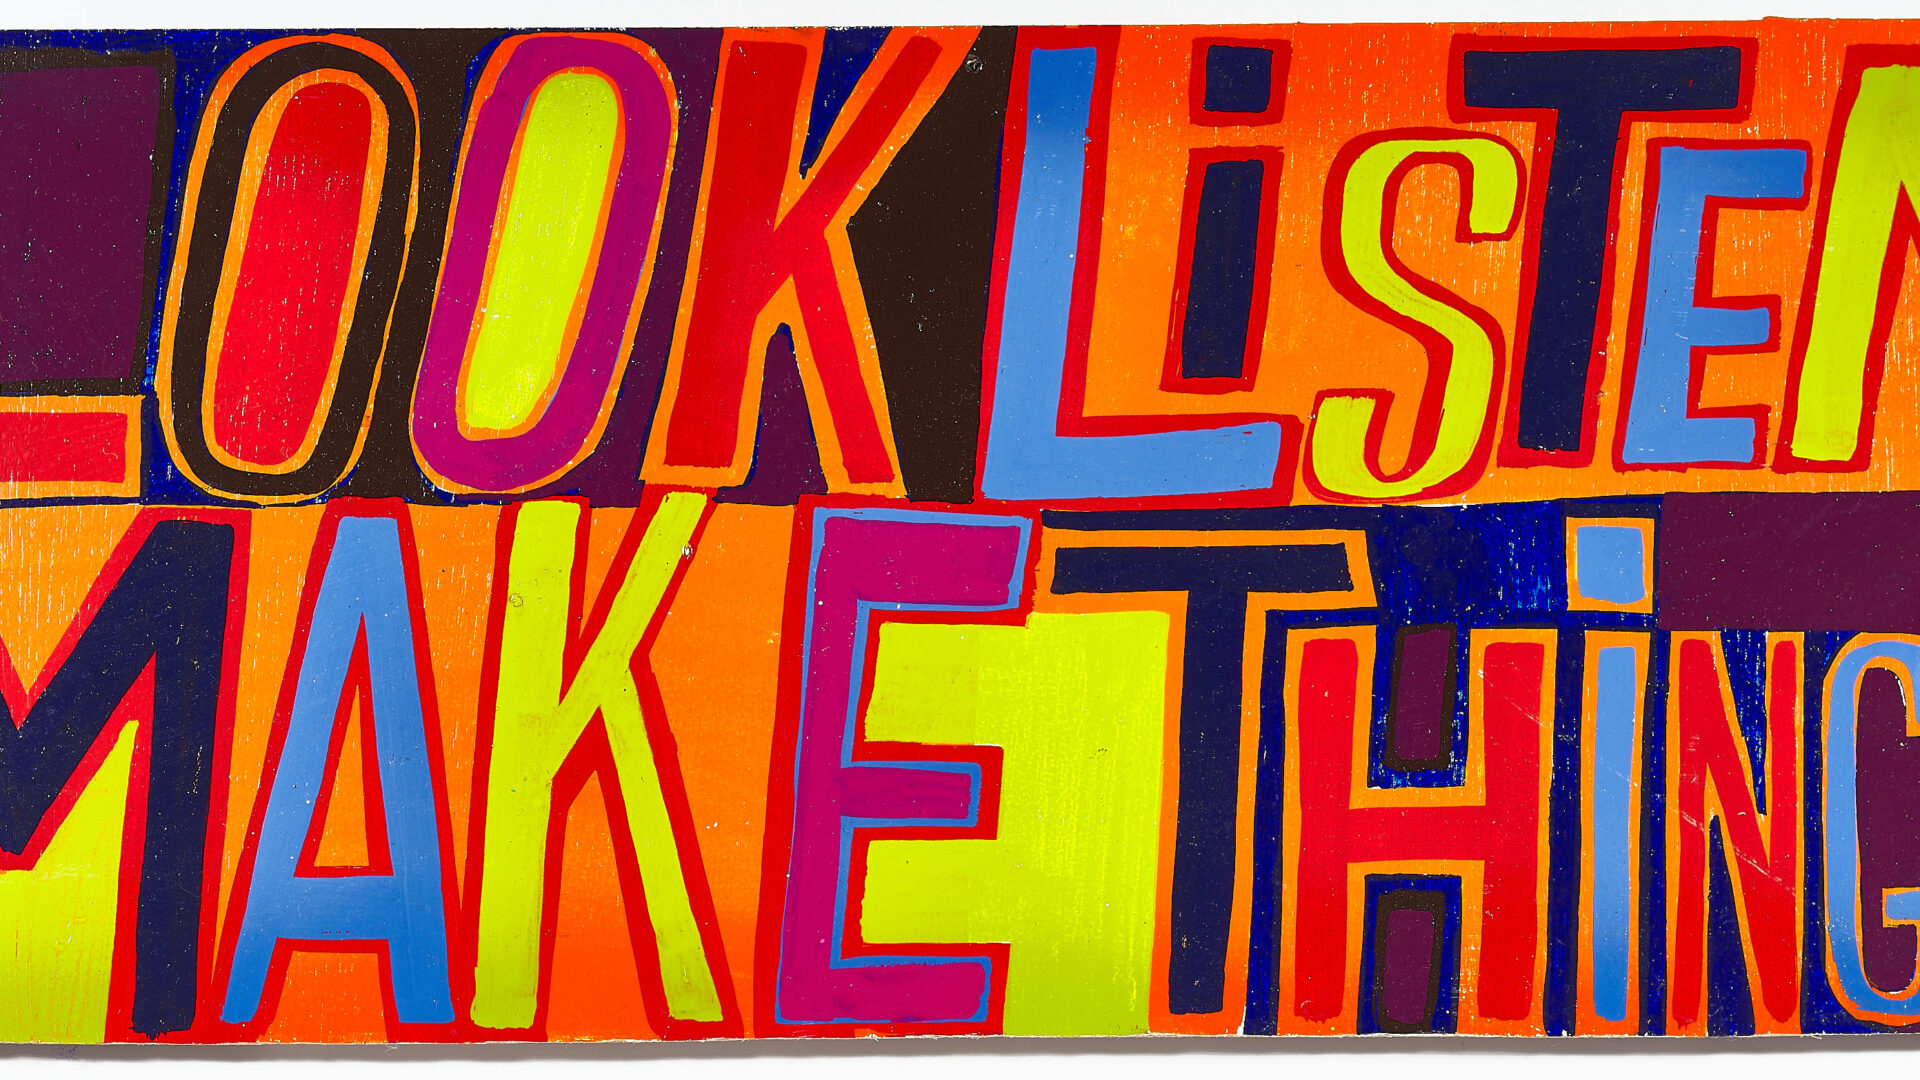 A colourful slogan-style artwork. Look, Listen, Make Things